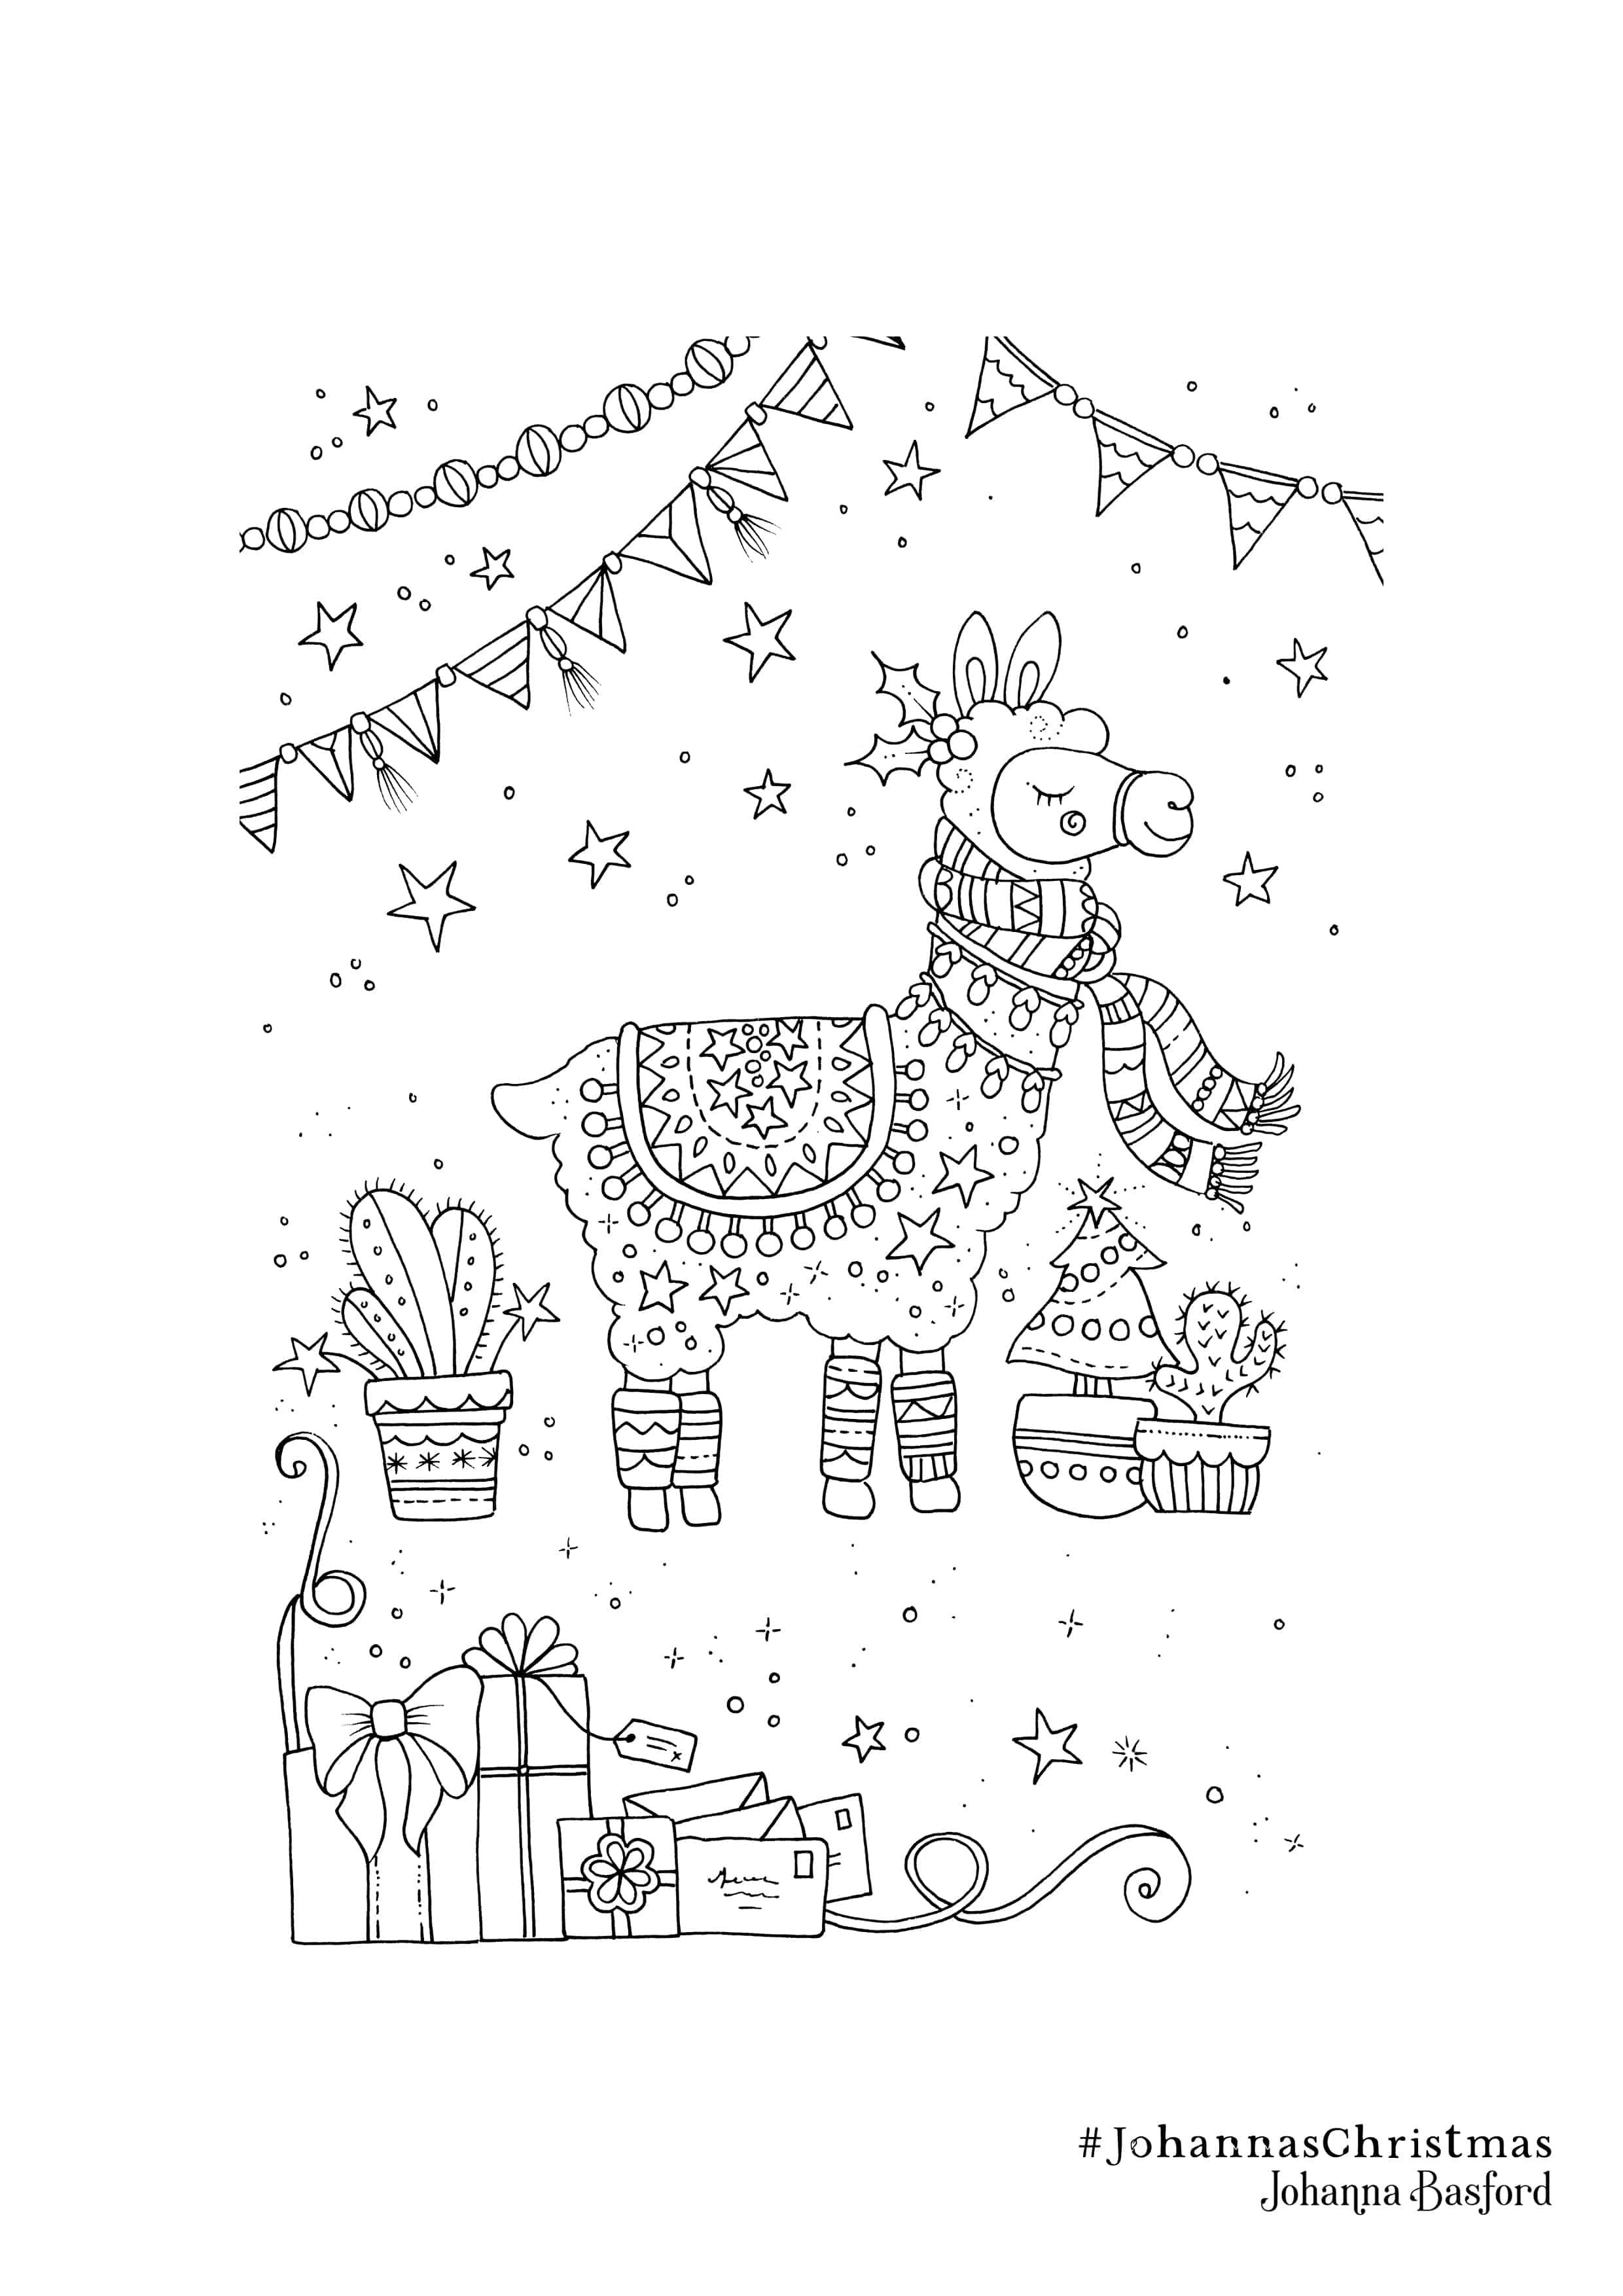 Https Www Johannabasford Com Wp Content Uploads 2018 12 Christmas Llama Jpg In 2020 Coloring Pages Winter Pokemon Coloring Pages Truck Coloring Pages